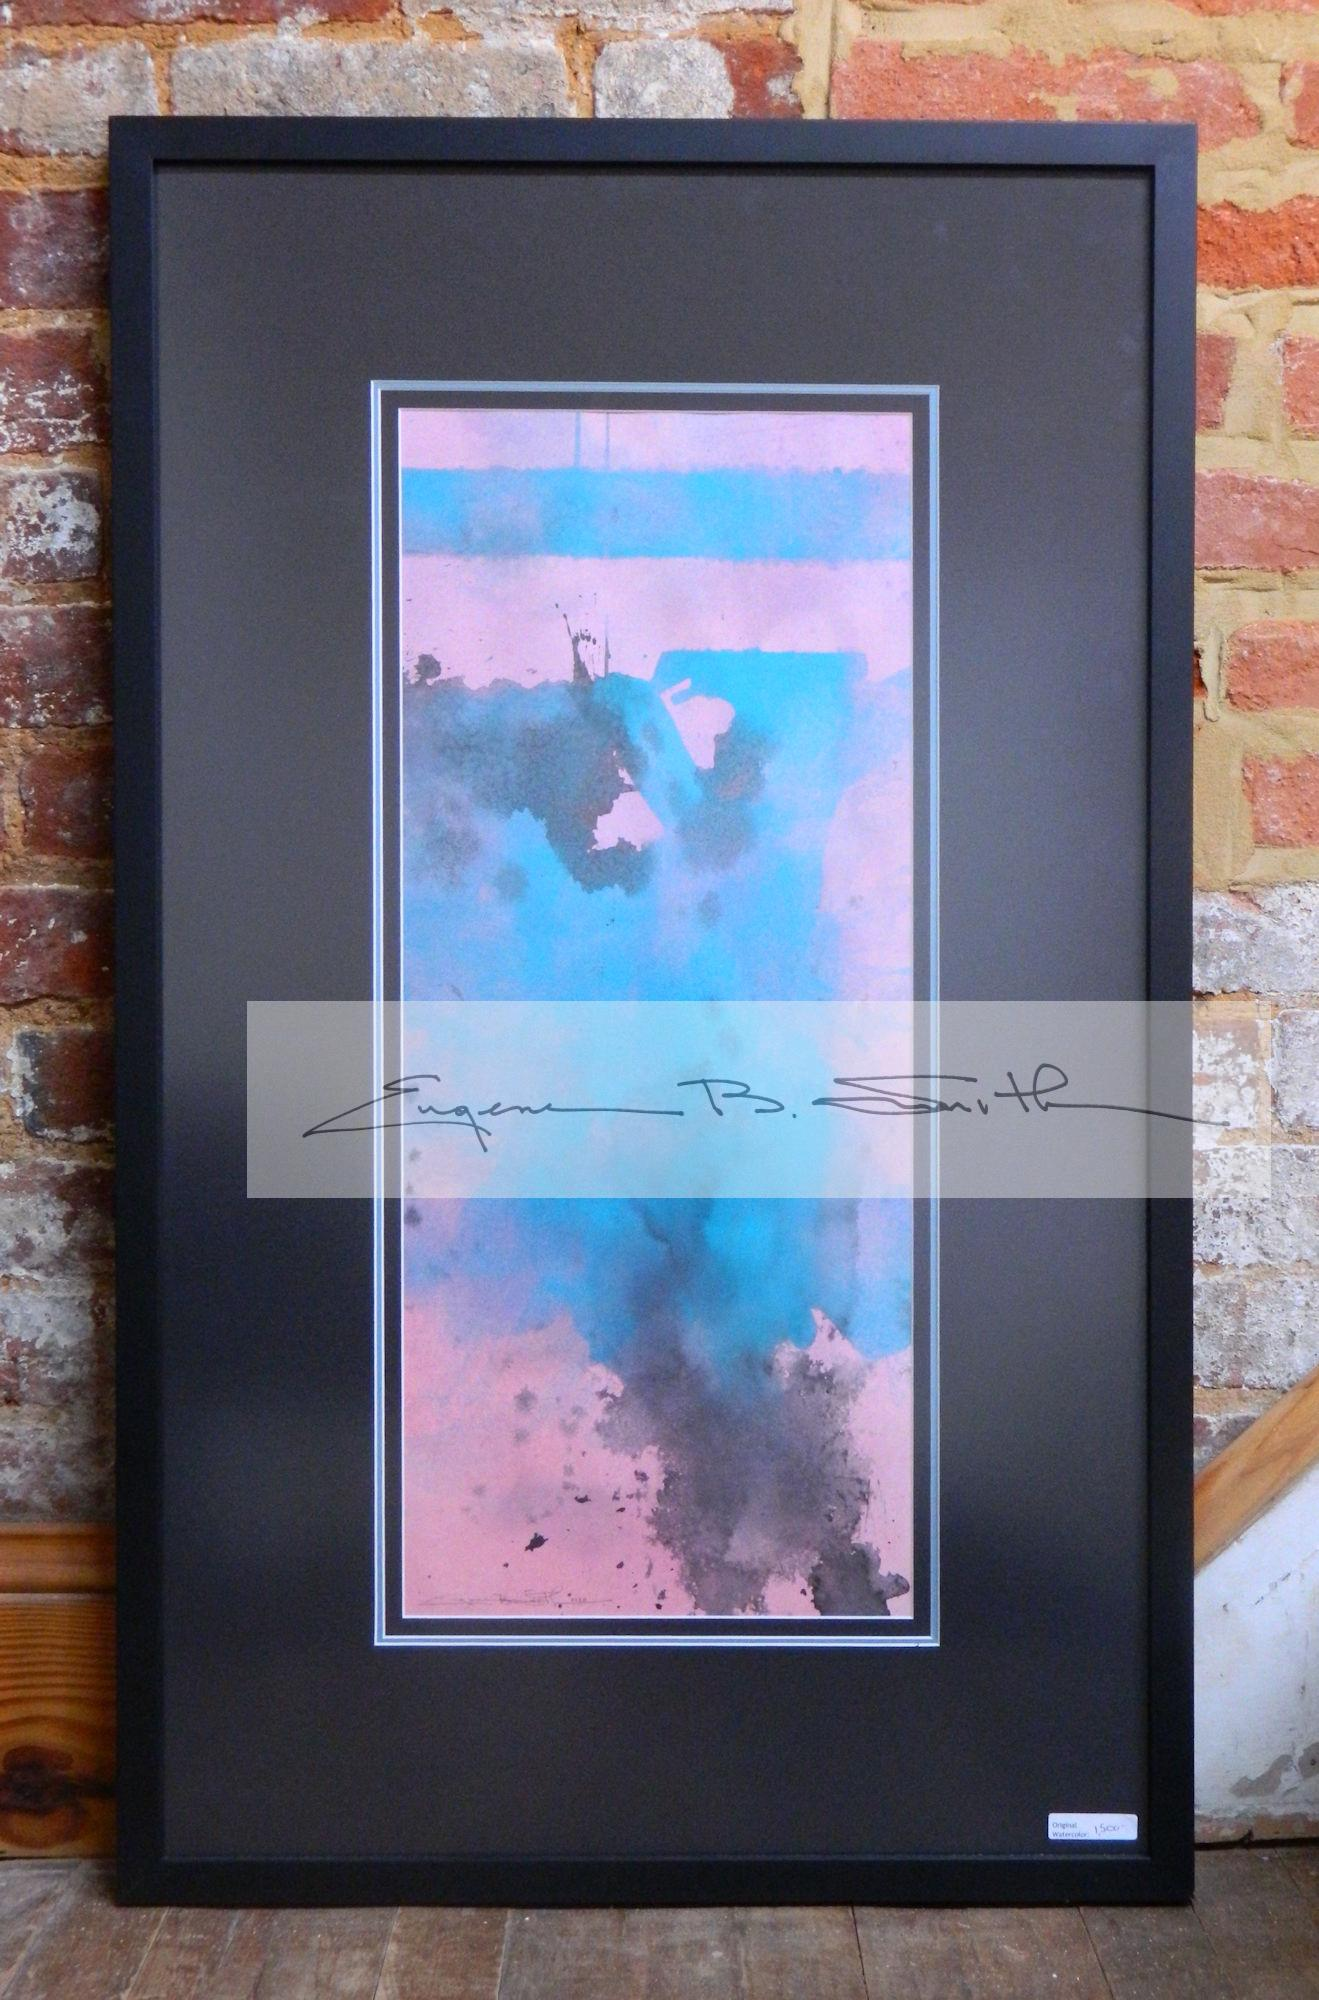 Blue Abstract | Image size: 23.5 x 10 | Frame size: 33.5 x 20 | Call for price